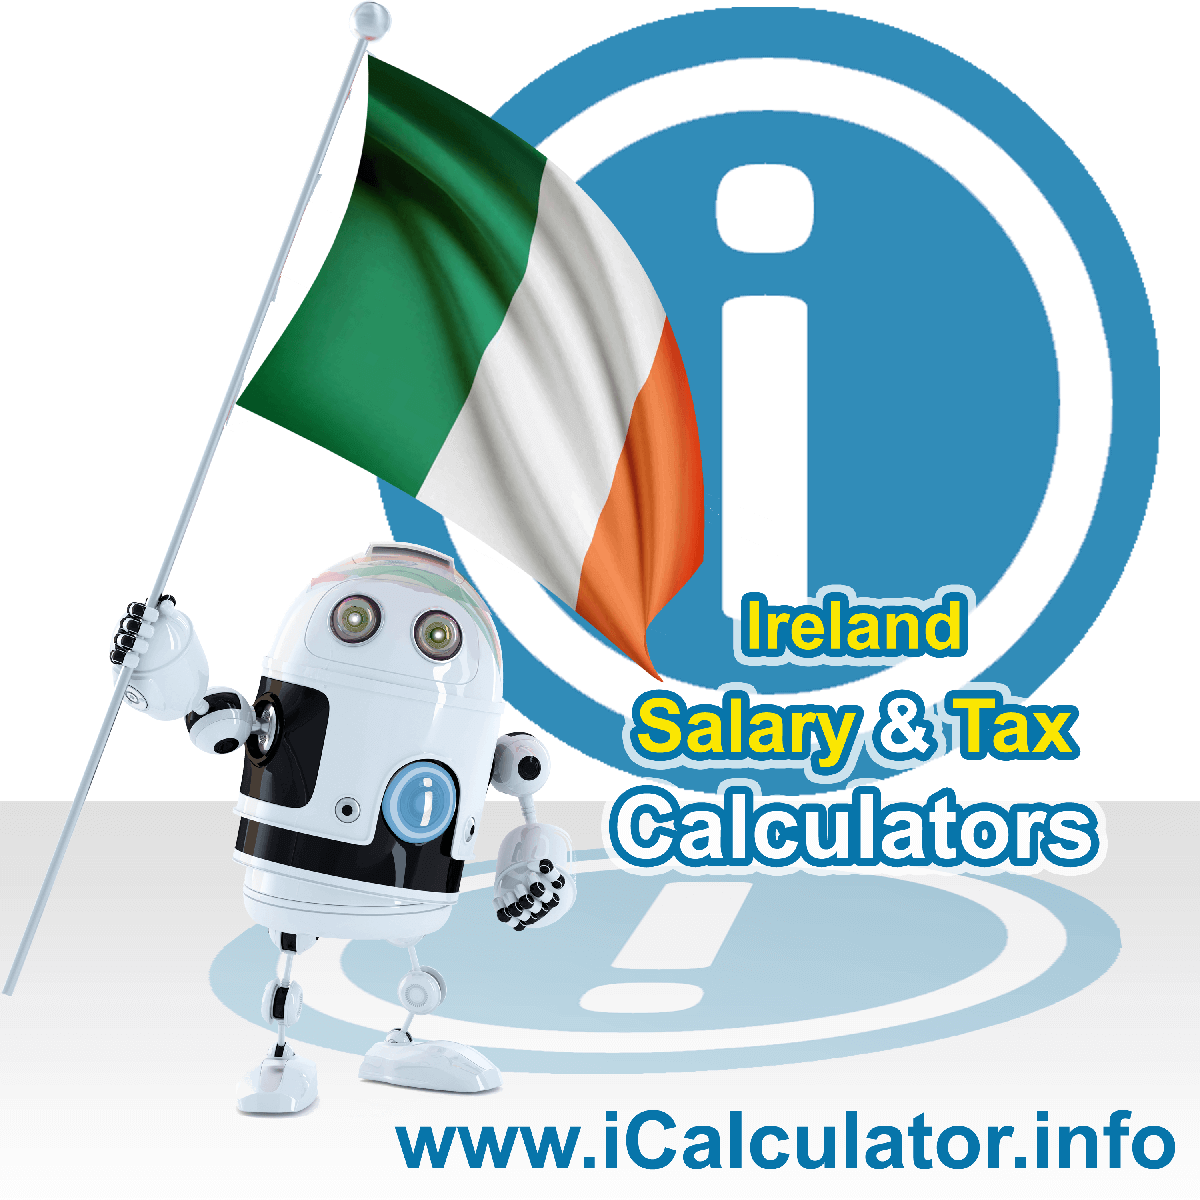 Ireland Tax Calculator. This image shows the Ireland flag and information relating to the tax formula for the Ireland Salary Calculator